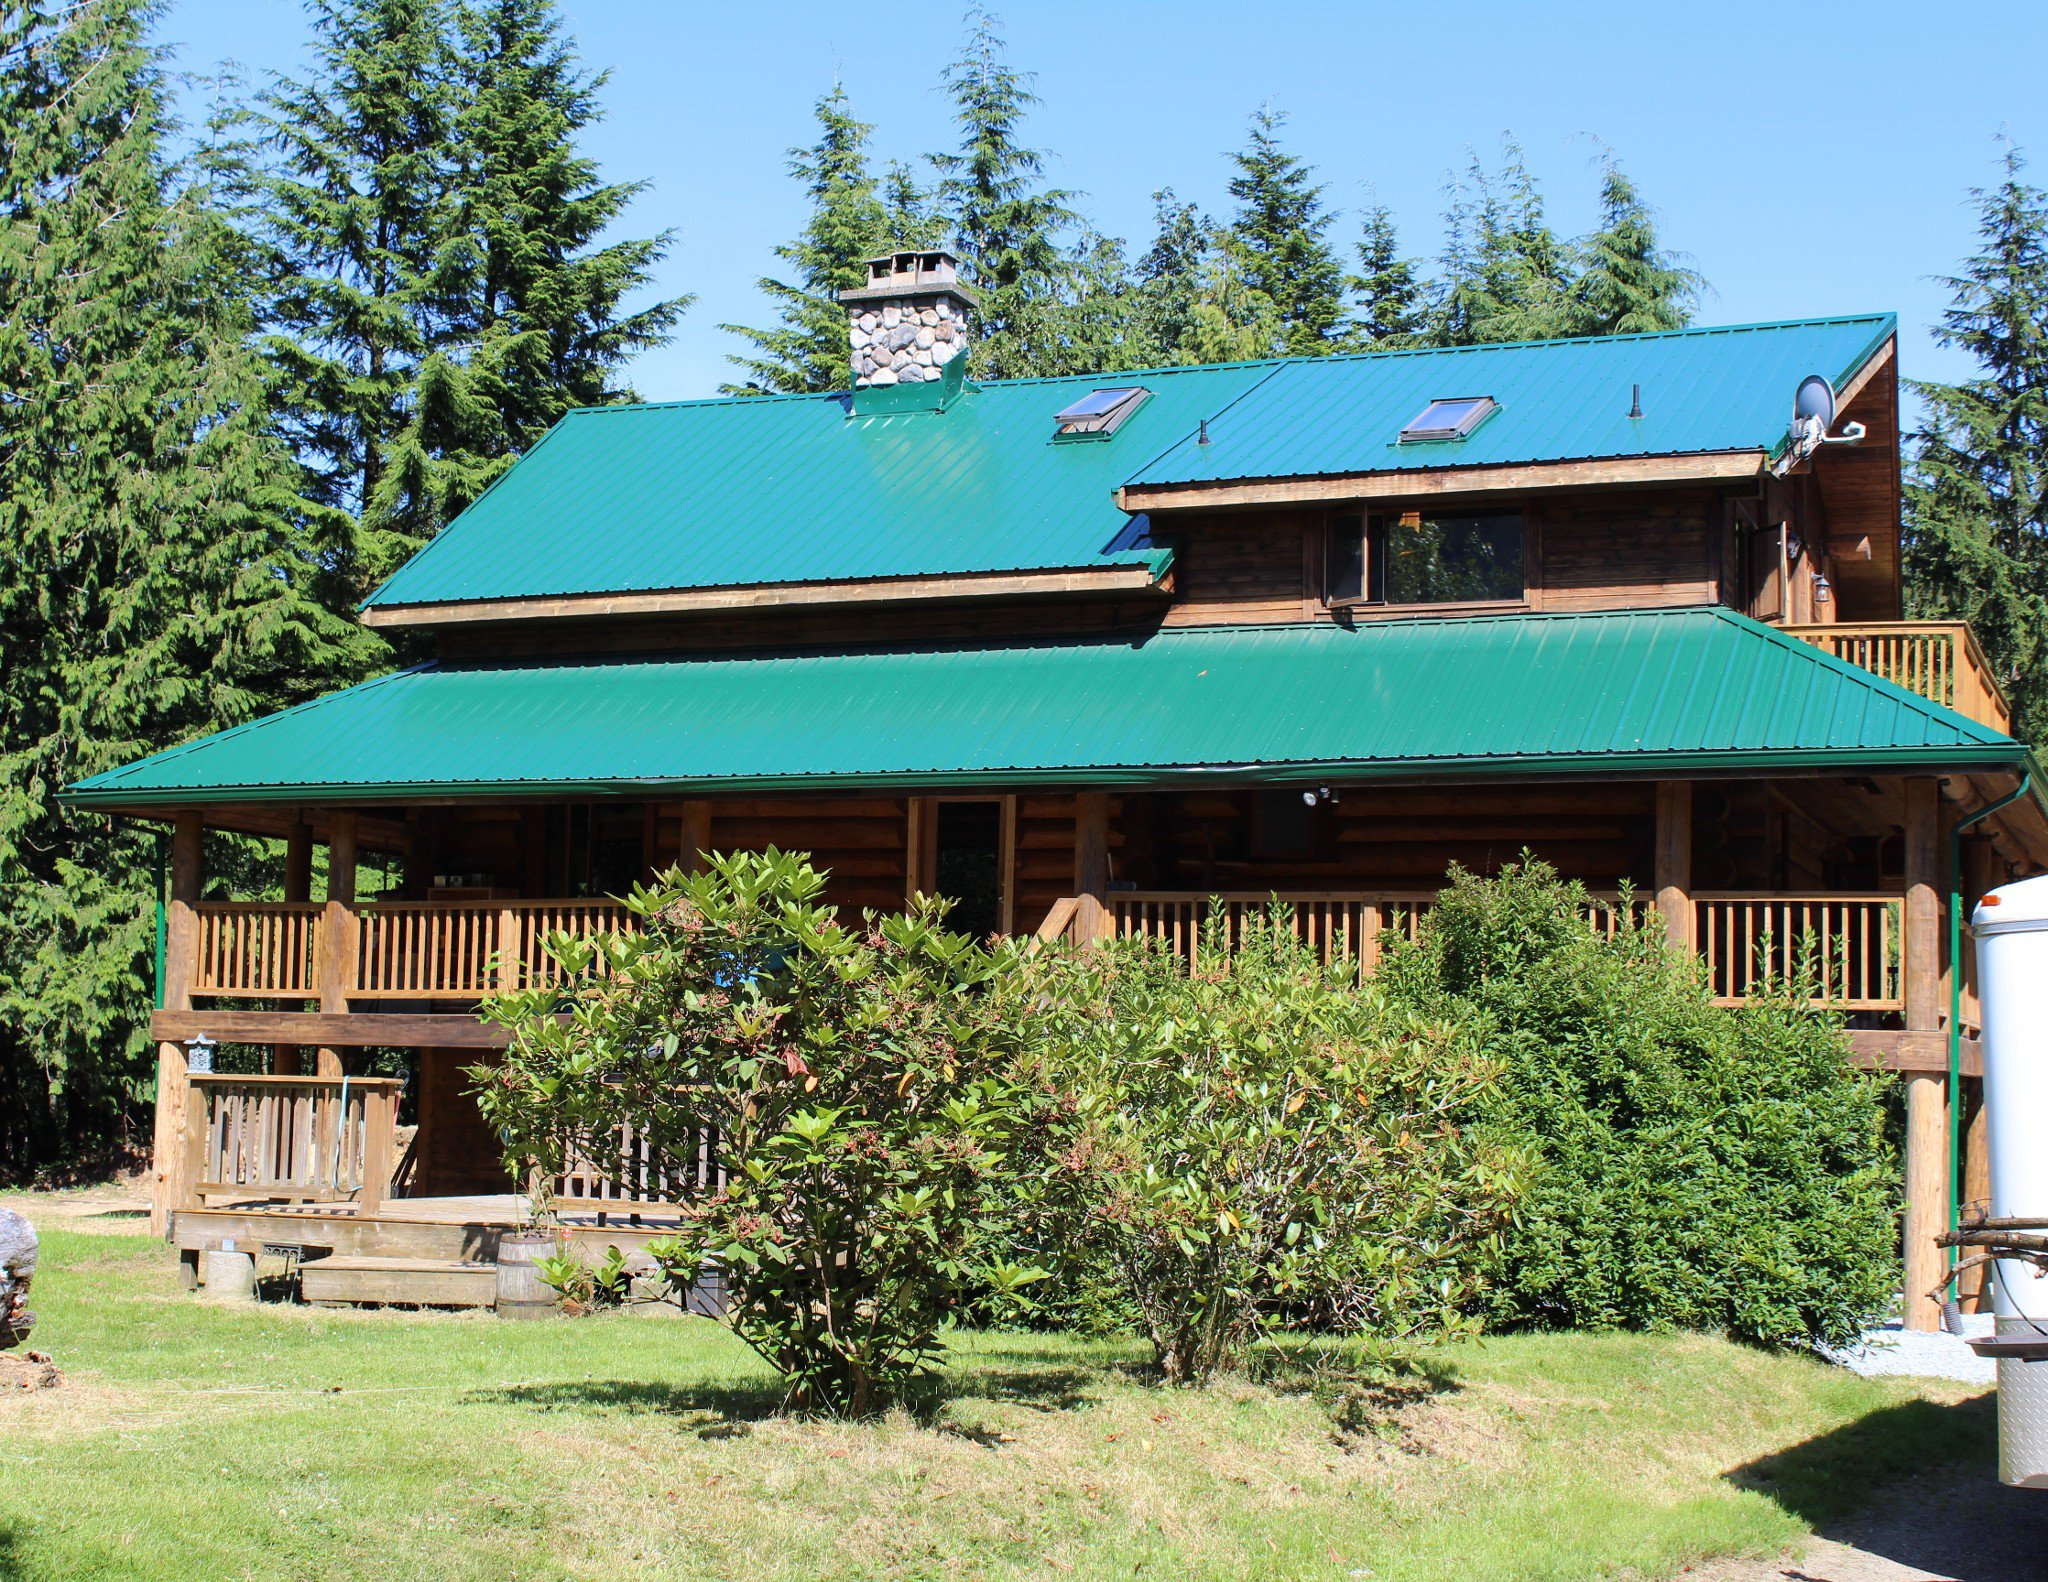 """Main Photo: 6040 DUNKERLEY Road in Abbotsford: Sumas Mountain House for sale in """"Sumas Mountain"""" : MLS®# R2474437"""